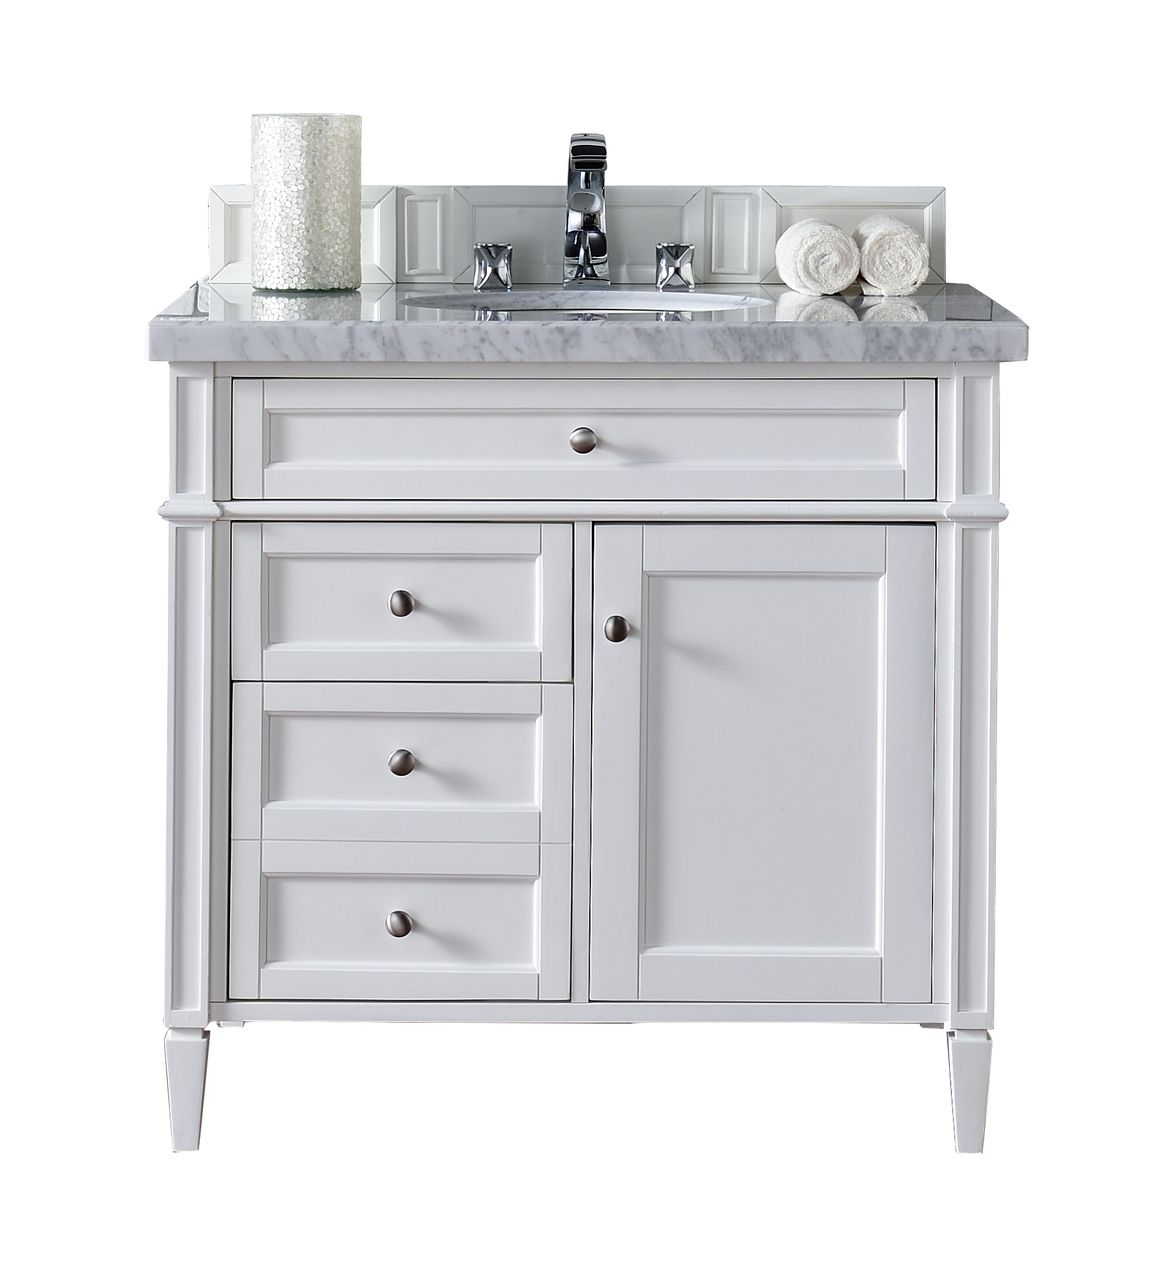 "Bathroom Vanity 30 X 21 36"" brittany single bathroom vanity white 